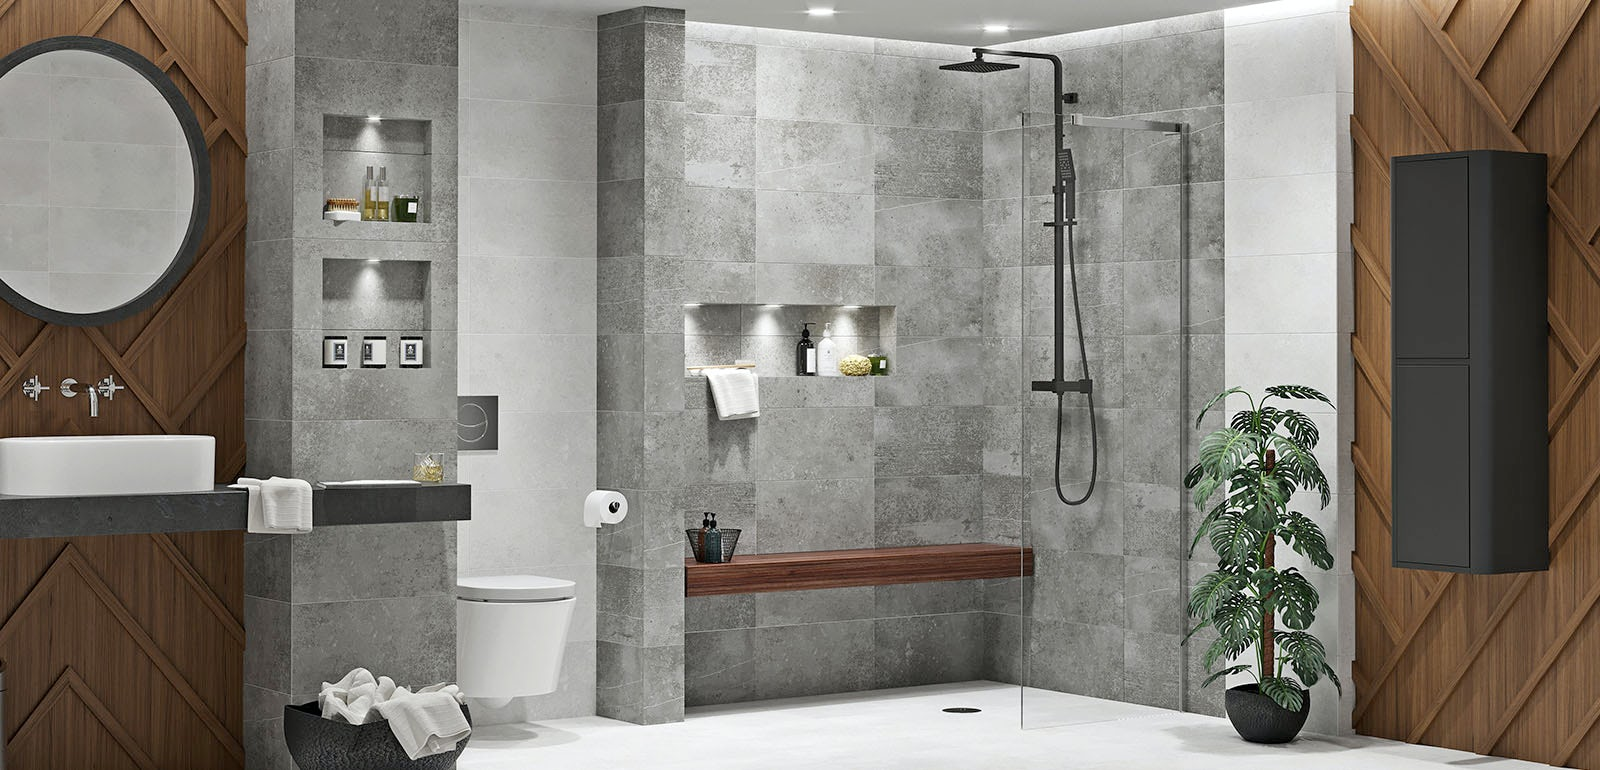 5 Reasons Why A Wet Room Is A Great Bathroom Option